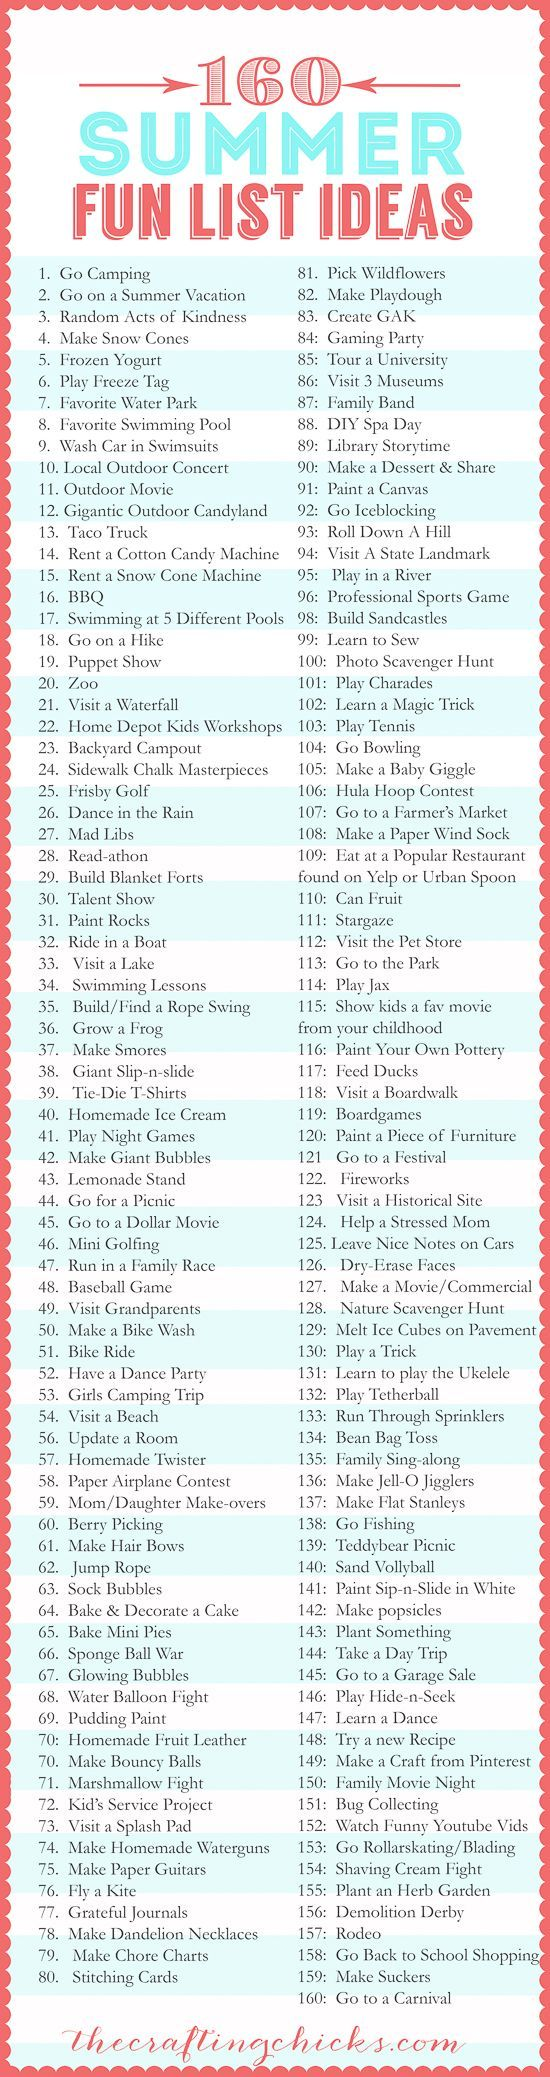 160 Activities to do with your Kids and Family this Summer - Kids Crafts - Kids Activities - Boredom Busters